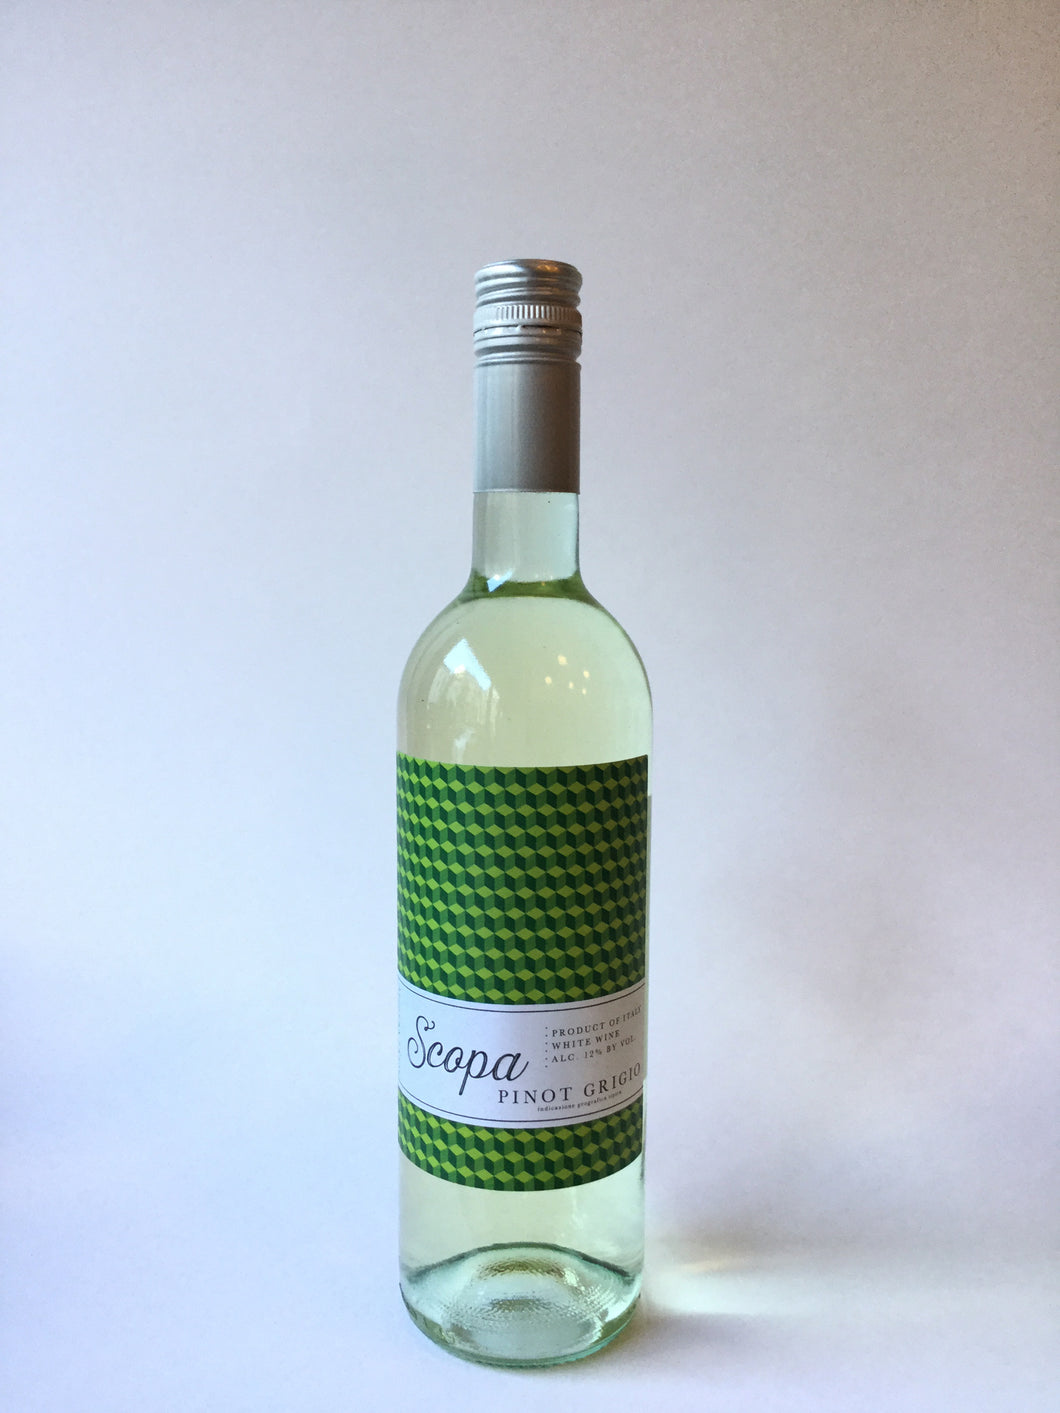 Scopa Pinot Grigio 2017, 750ml - Frankly Wines